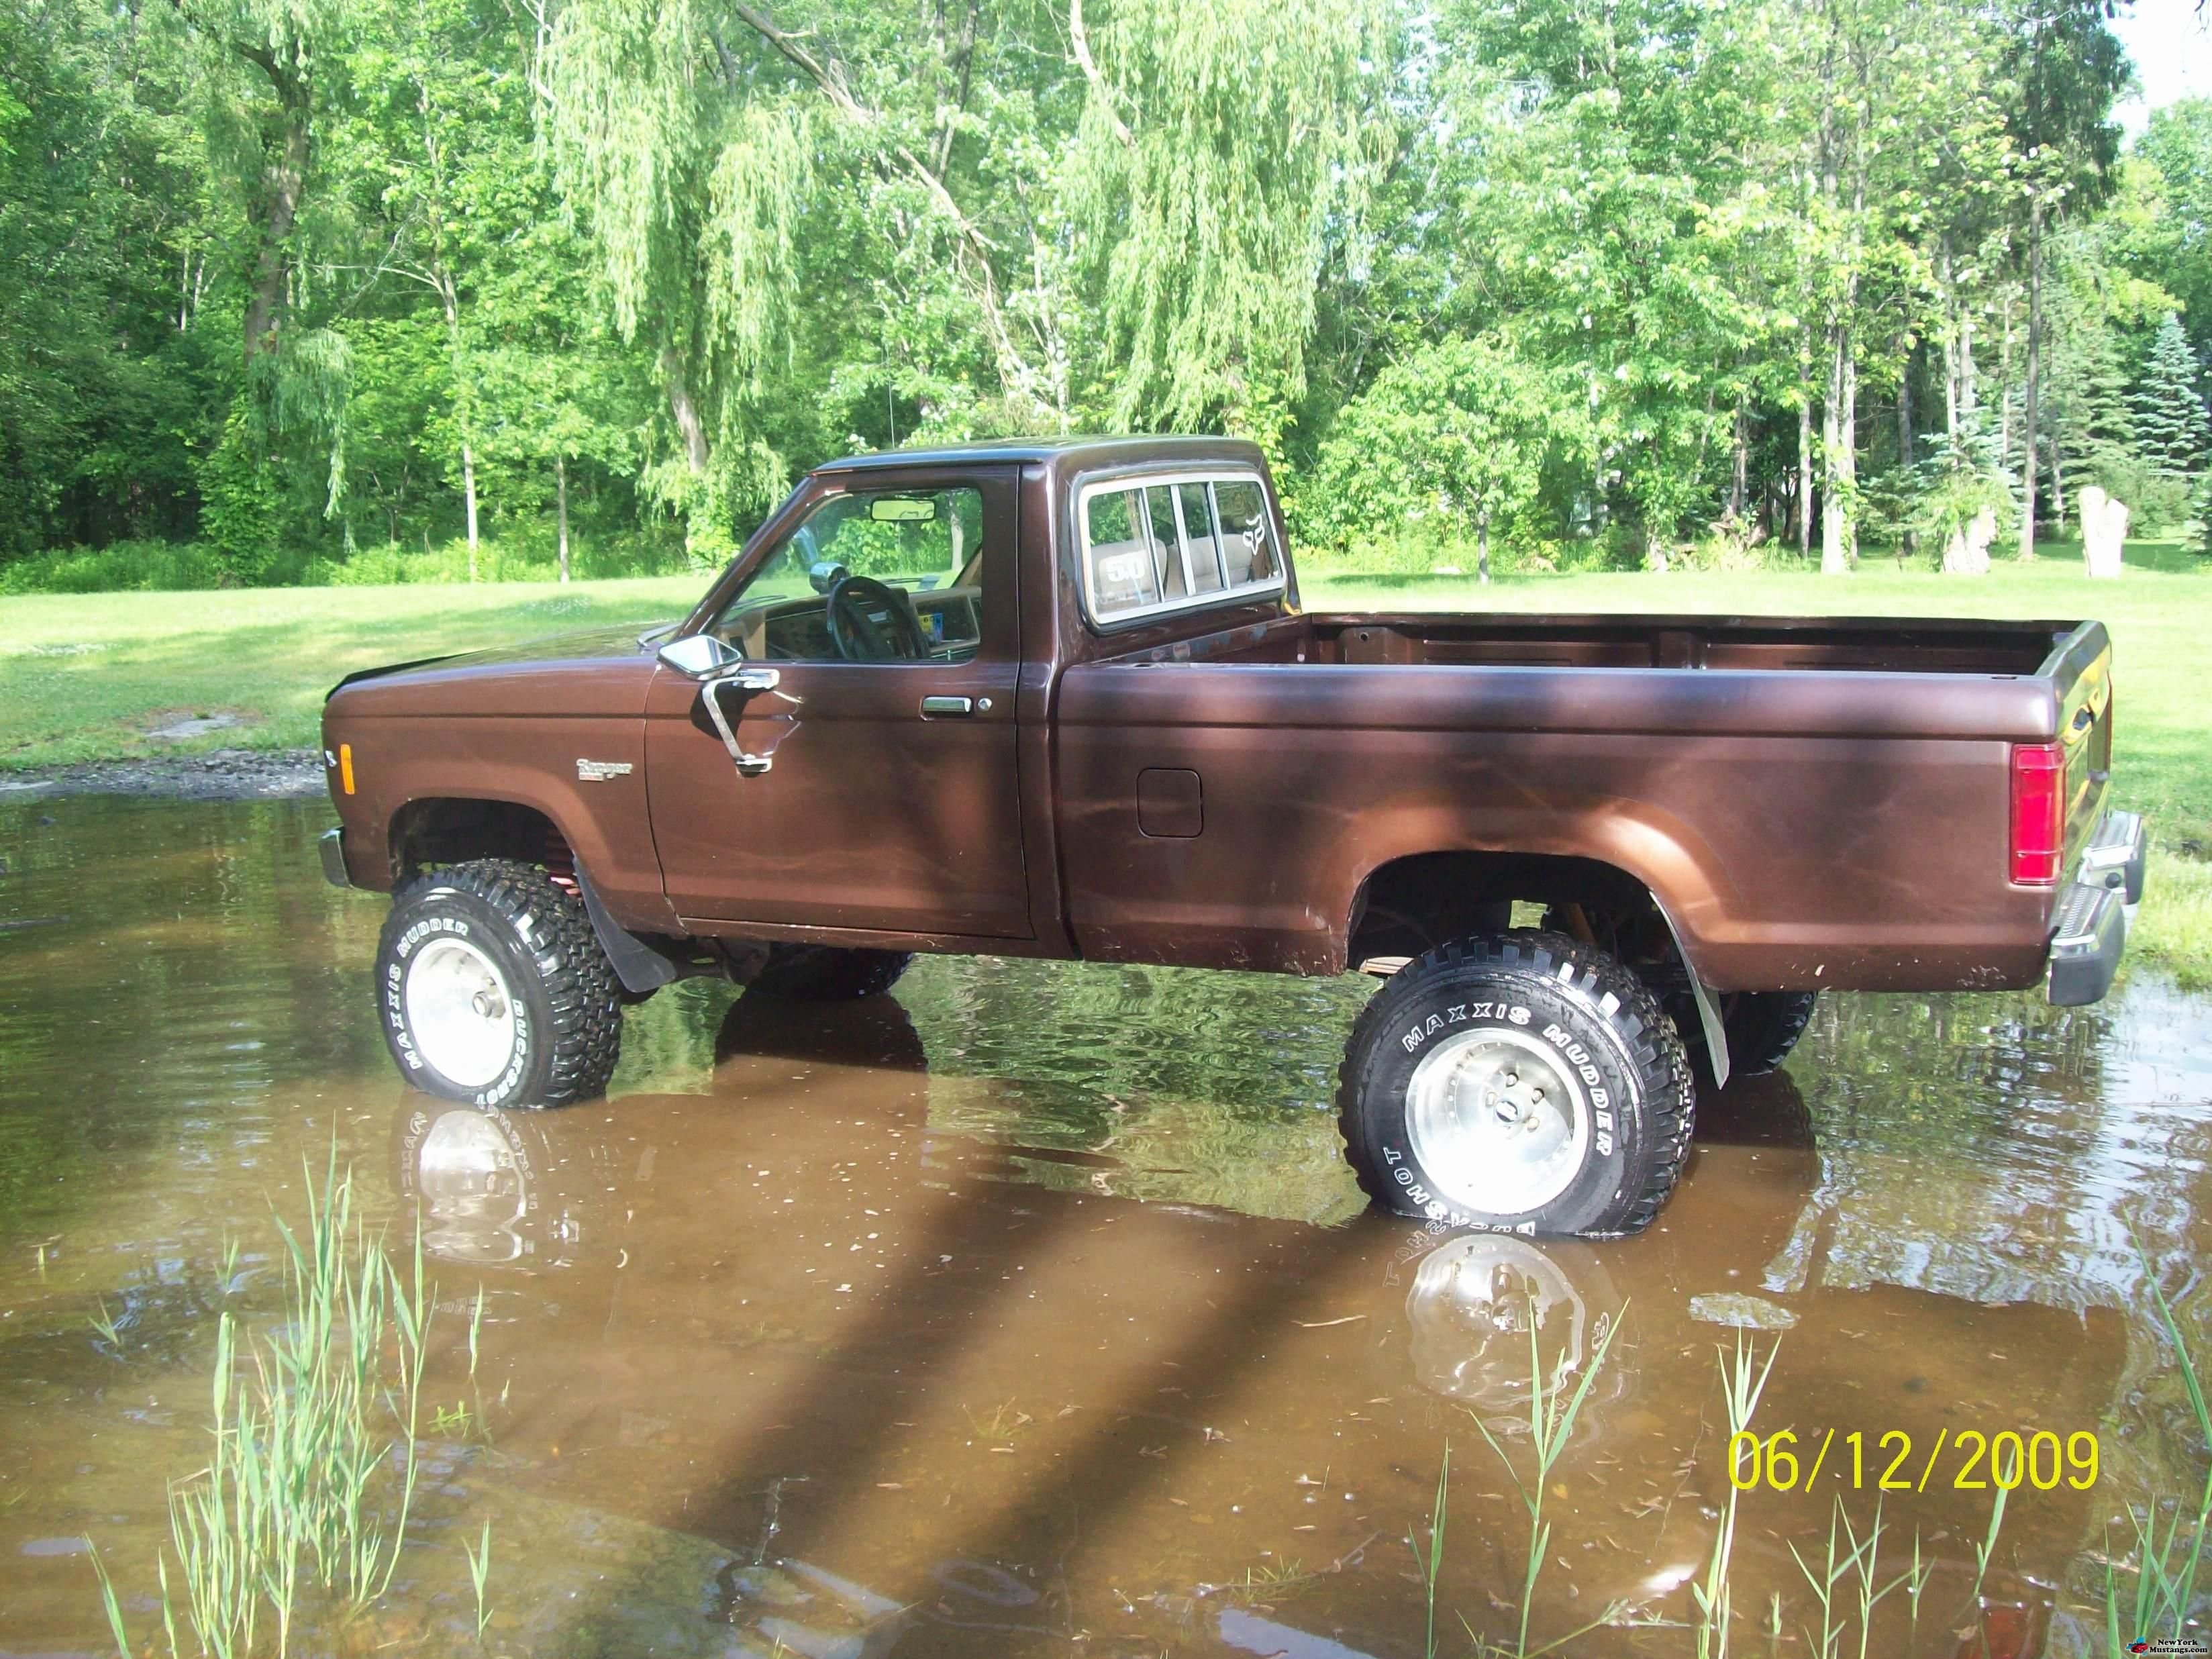 1983 Ford Ranger Xl Lifted New York Mustangs Forums Ford Ranger Ford Ranger Truck Ford Ranger Xl